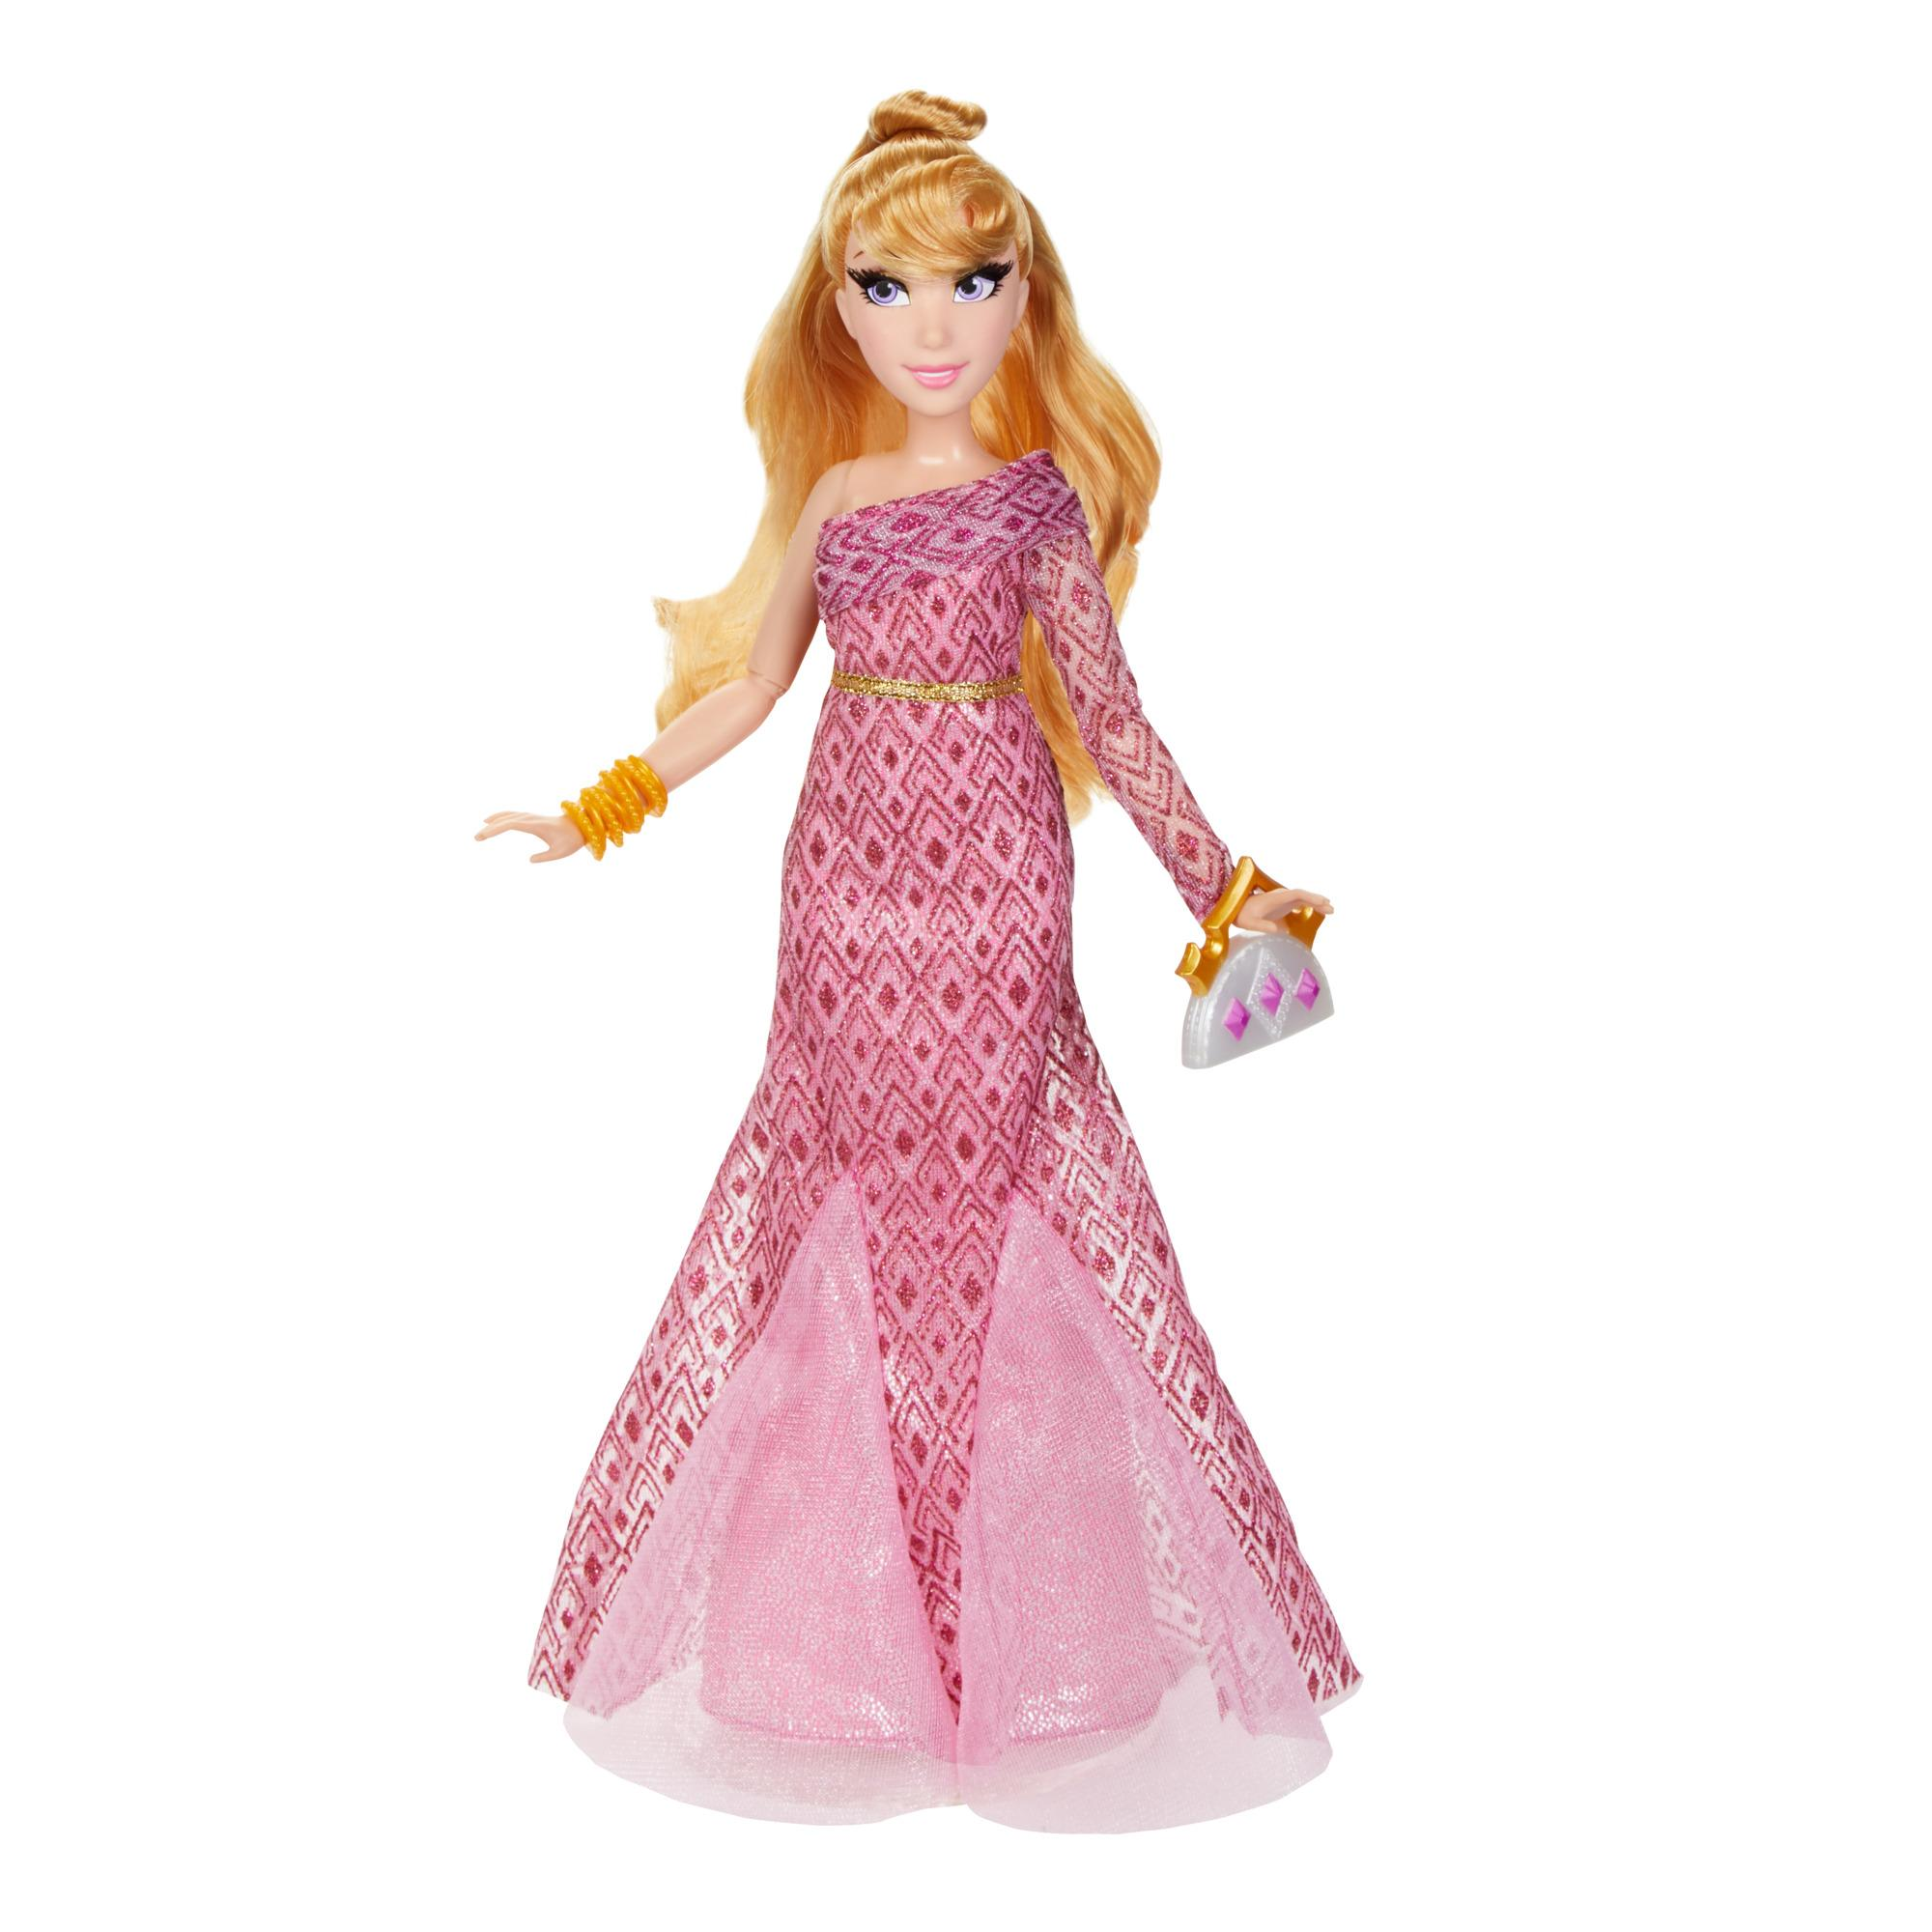 Disney Princess Style Series Aurora Fashion Doll, Contemporary Style Dress with Purse and Shoes, Toy for Girls